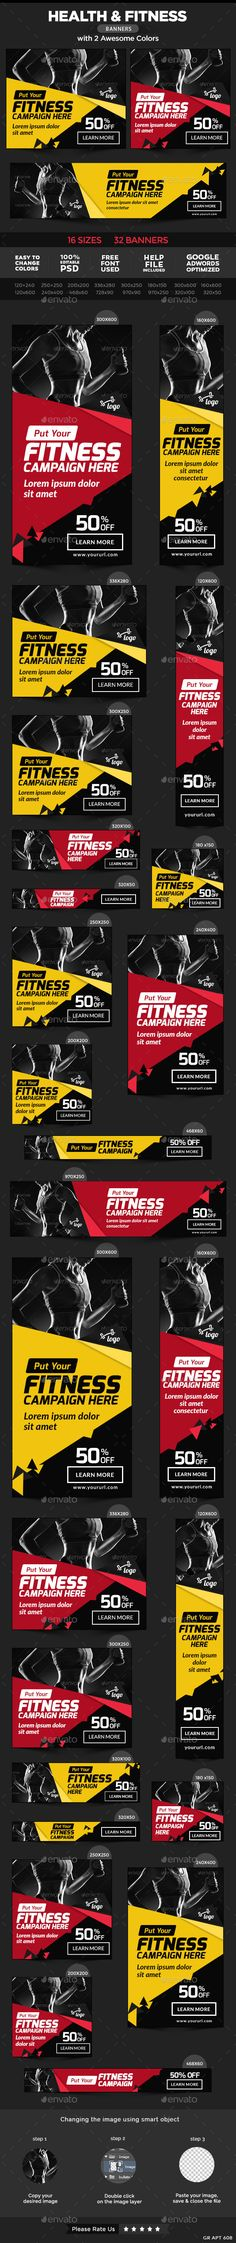 Buy Health and Fitness Banners by Hyov on GraphicRiver. Promote your Products and services related to Health and Fitness niche with this great looking Banner Set. Banner Design, Academia Fitness, Bussiness Card, Facebook Banner, Sports Graphics, Fitness Design, Social Media Banner, Dojo, Banner Template